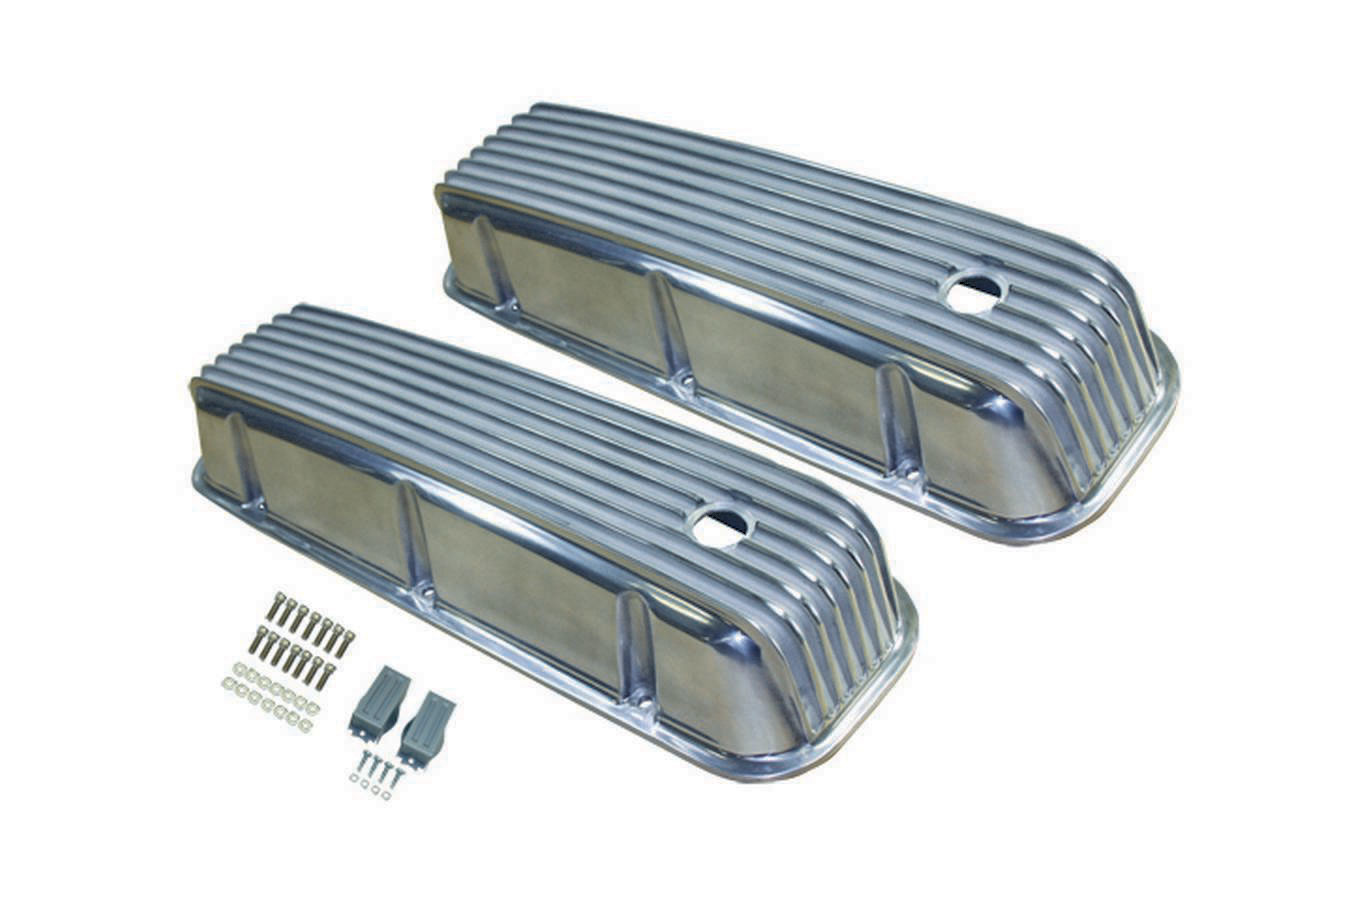 Racing Power Company R6330 Tall Ball Milled Polished Aluminum Valve Cover for Big Block Chevy